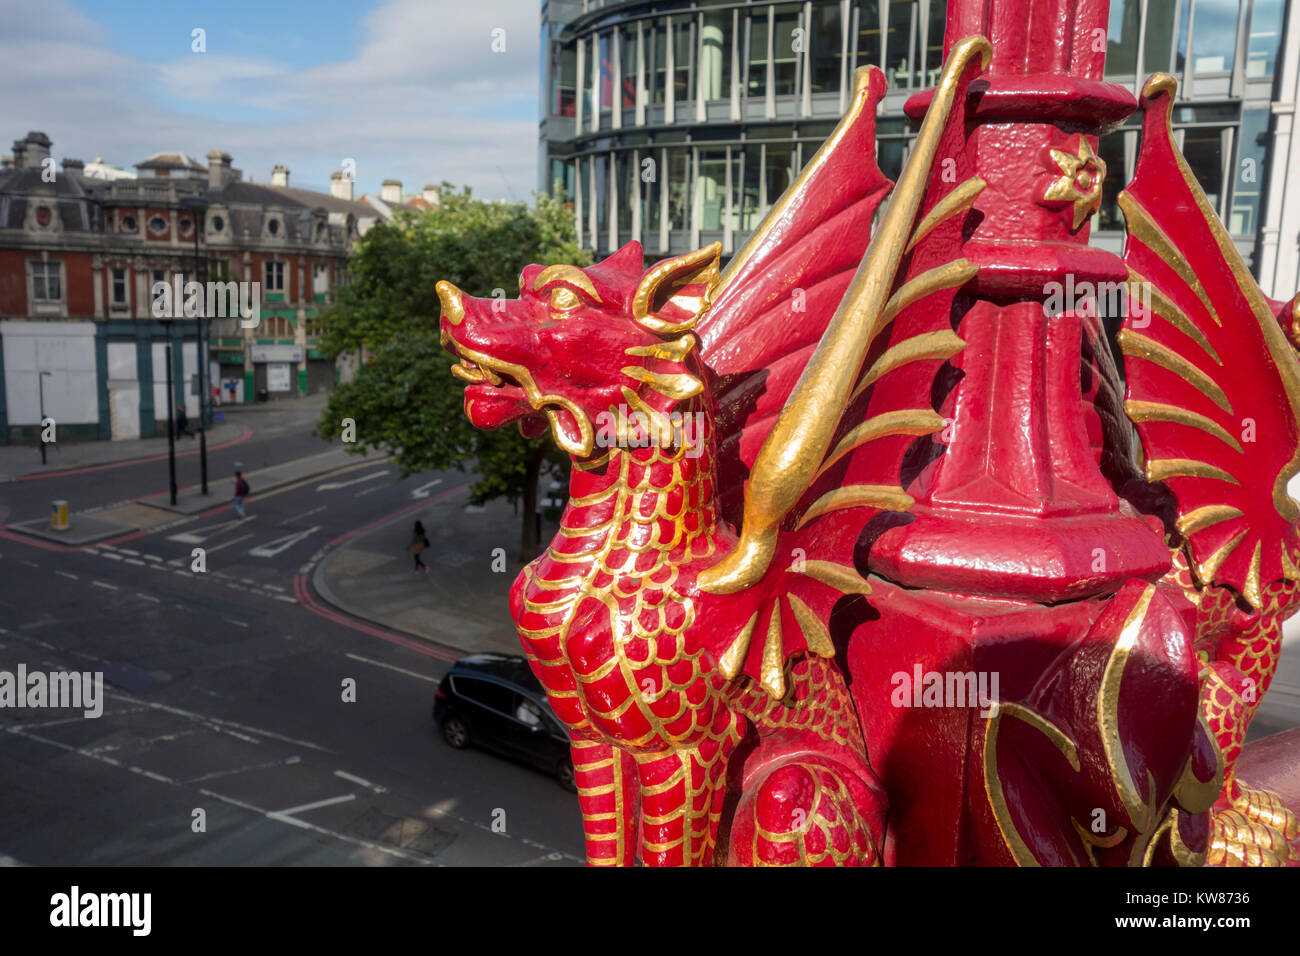 Guilded City Dragon decorations on the  lamp posts on Holborn Viaduct, City of London, UK - Stock Image